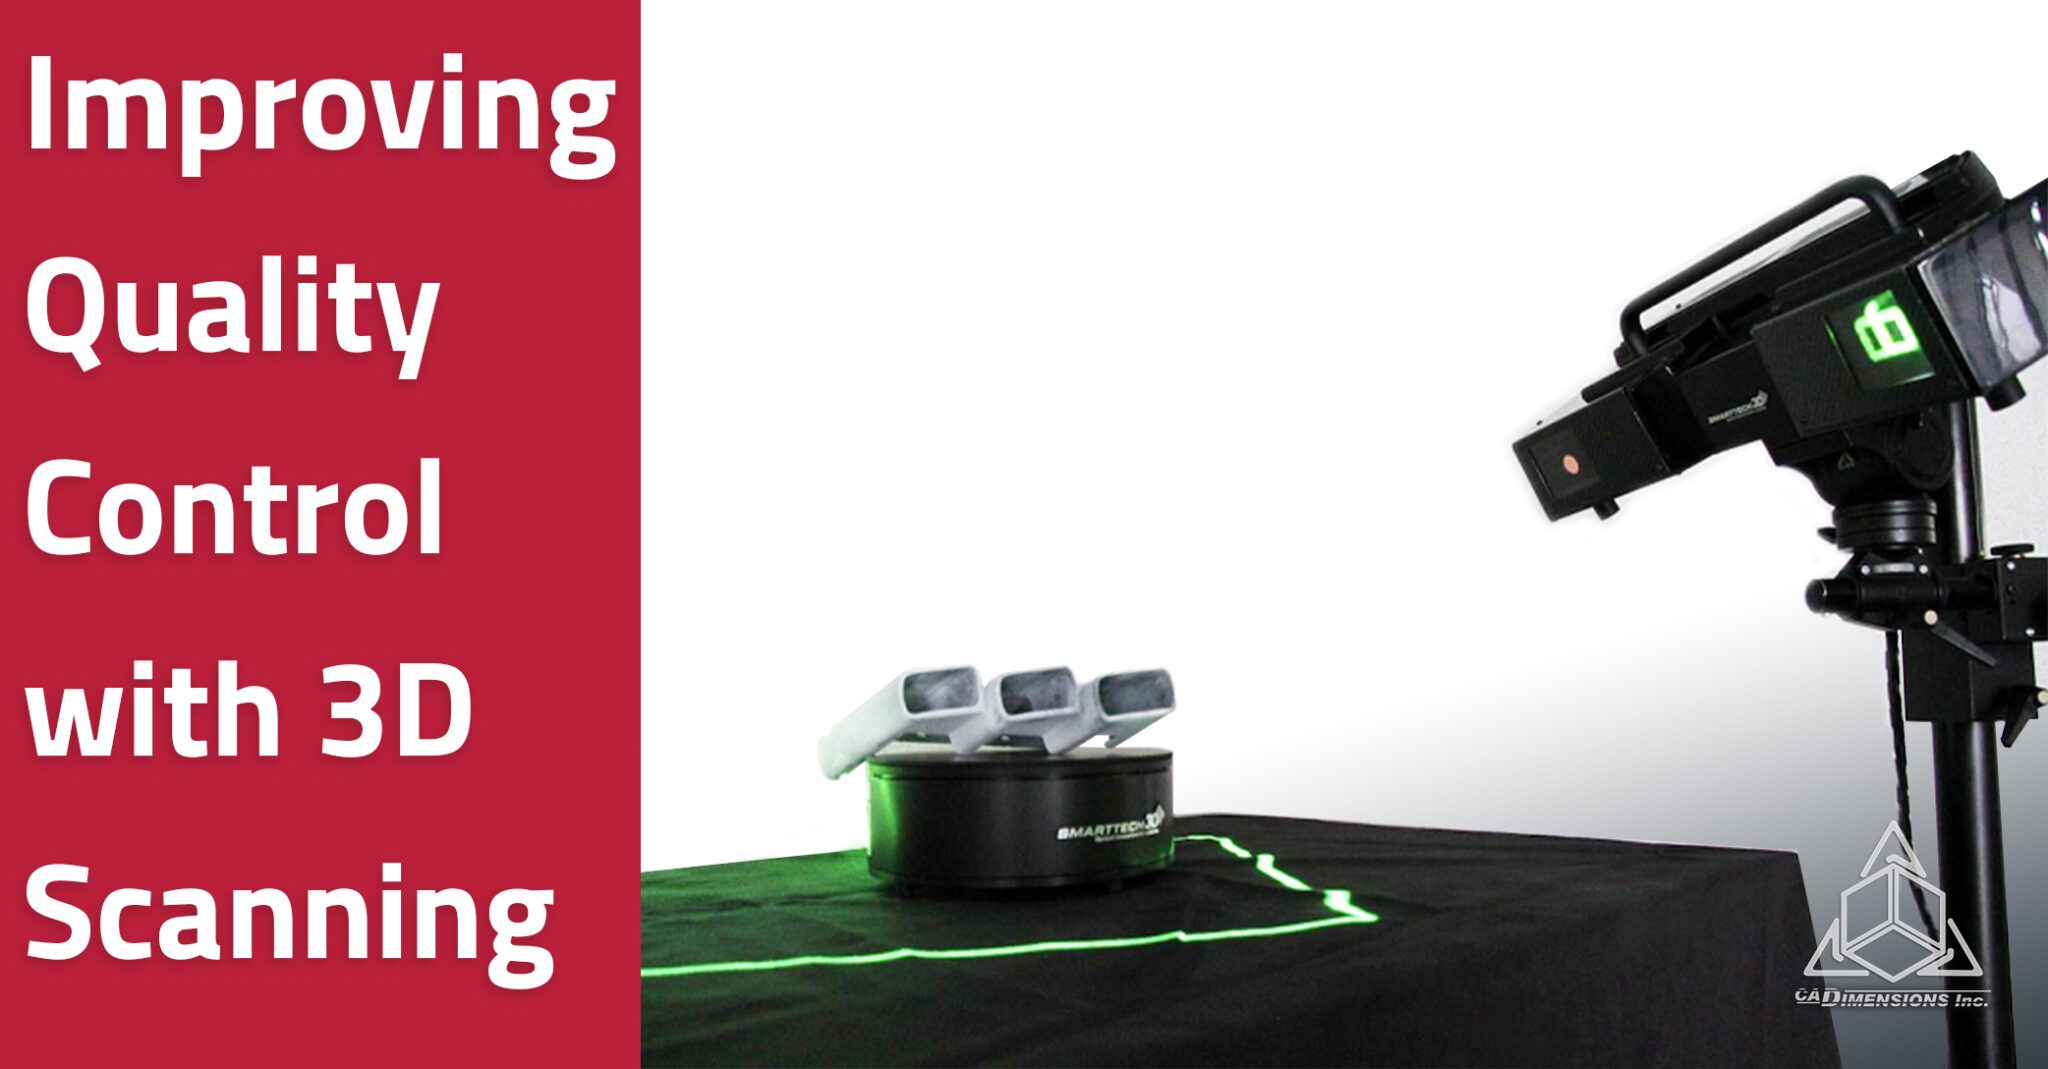 improving quality control with 3d scanning - blog 7-2019 cadimensions smarttech3d scanners